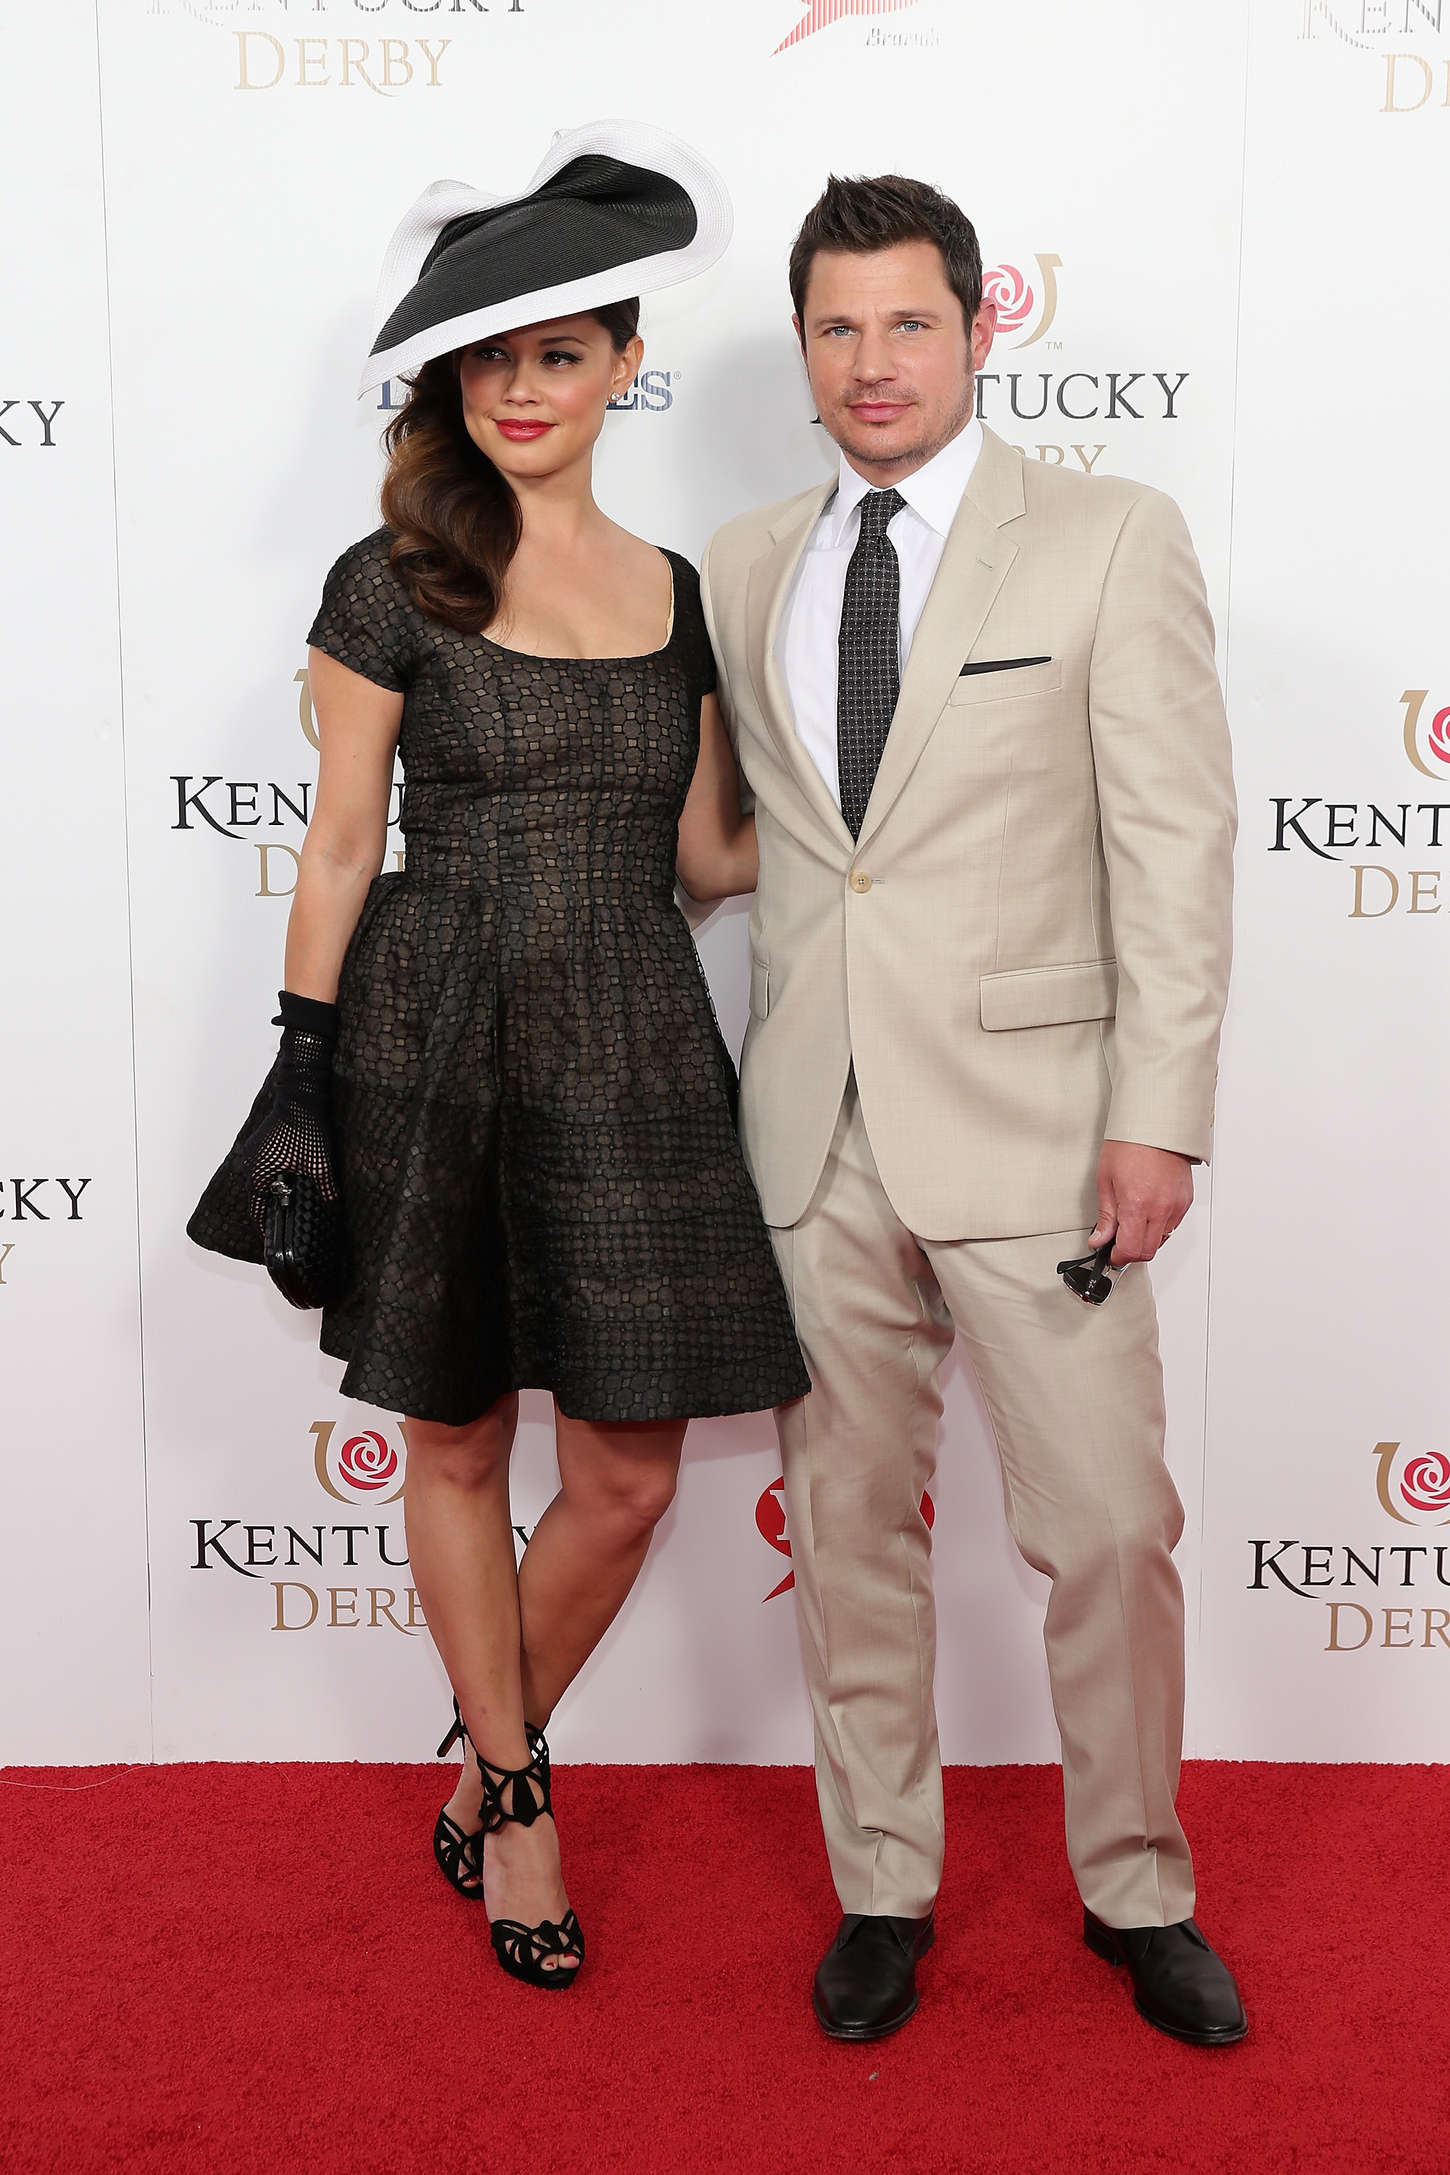 Vanessa Lachey Kentucky Derby in Louisville